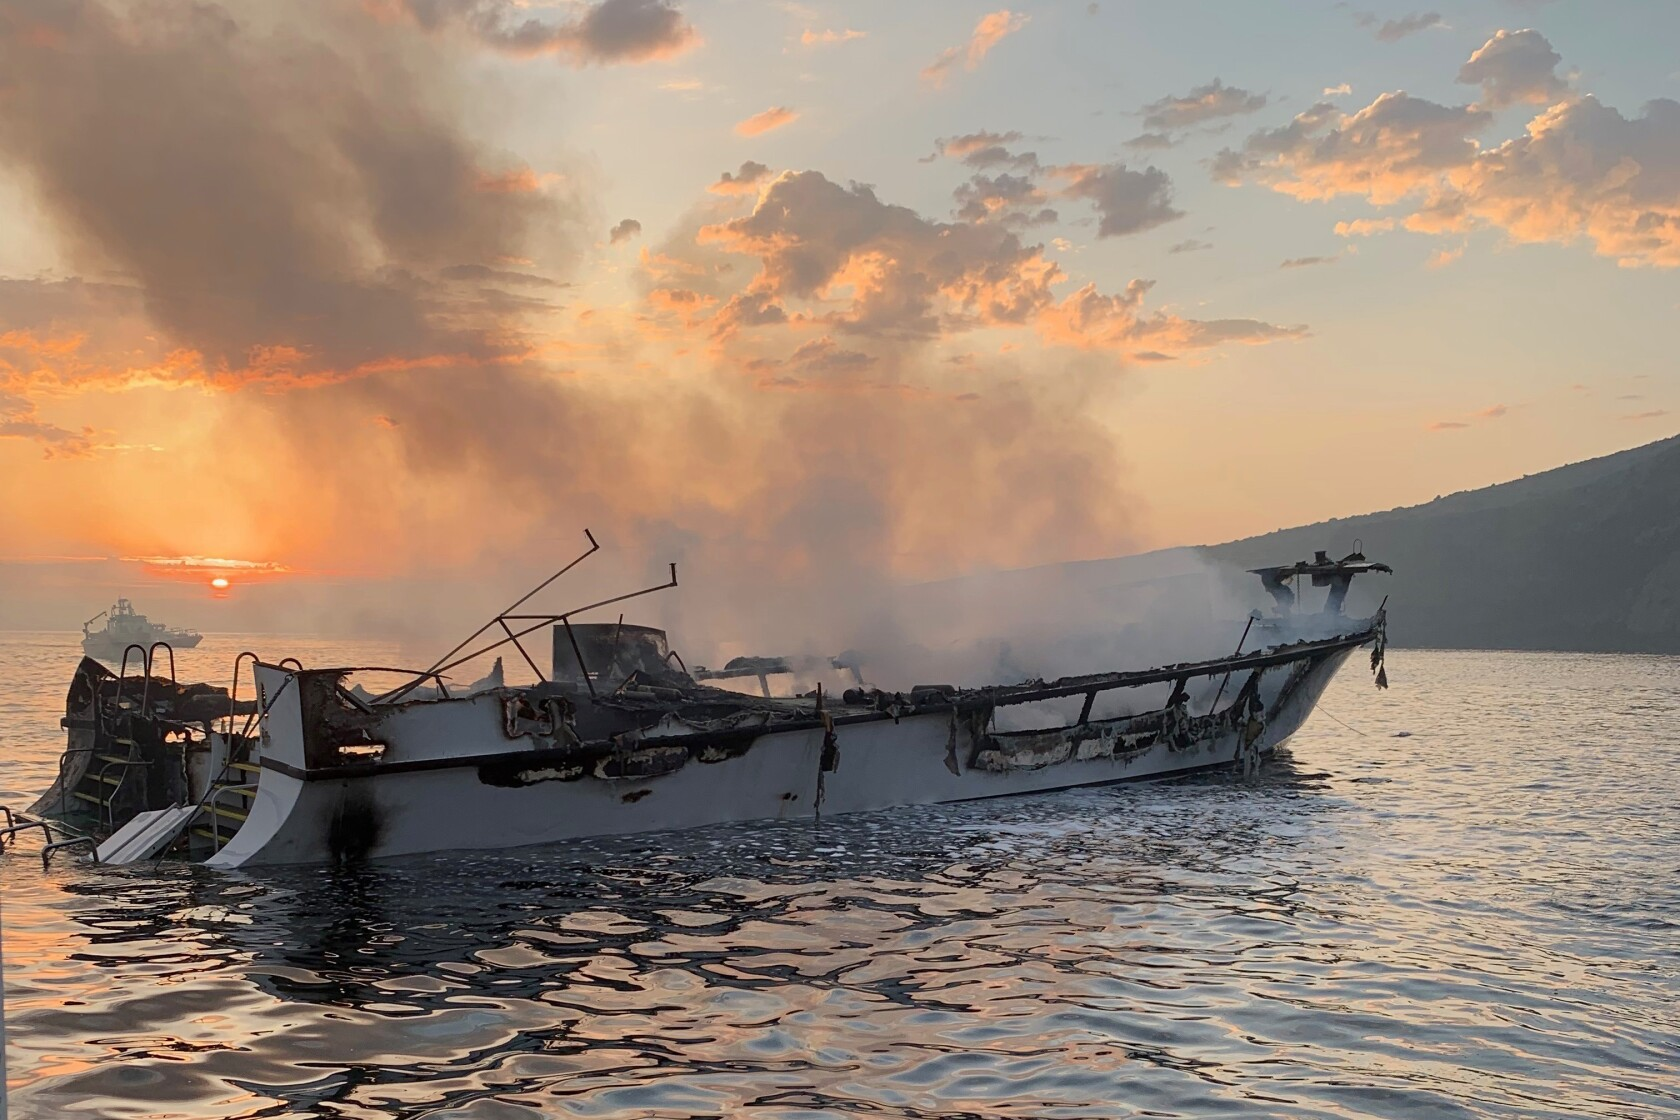 Biologist missing in boat fire had 'a love for marine life'